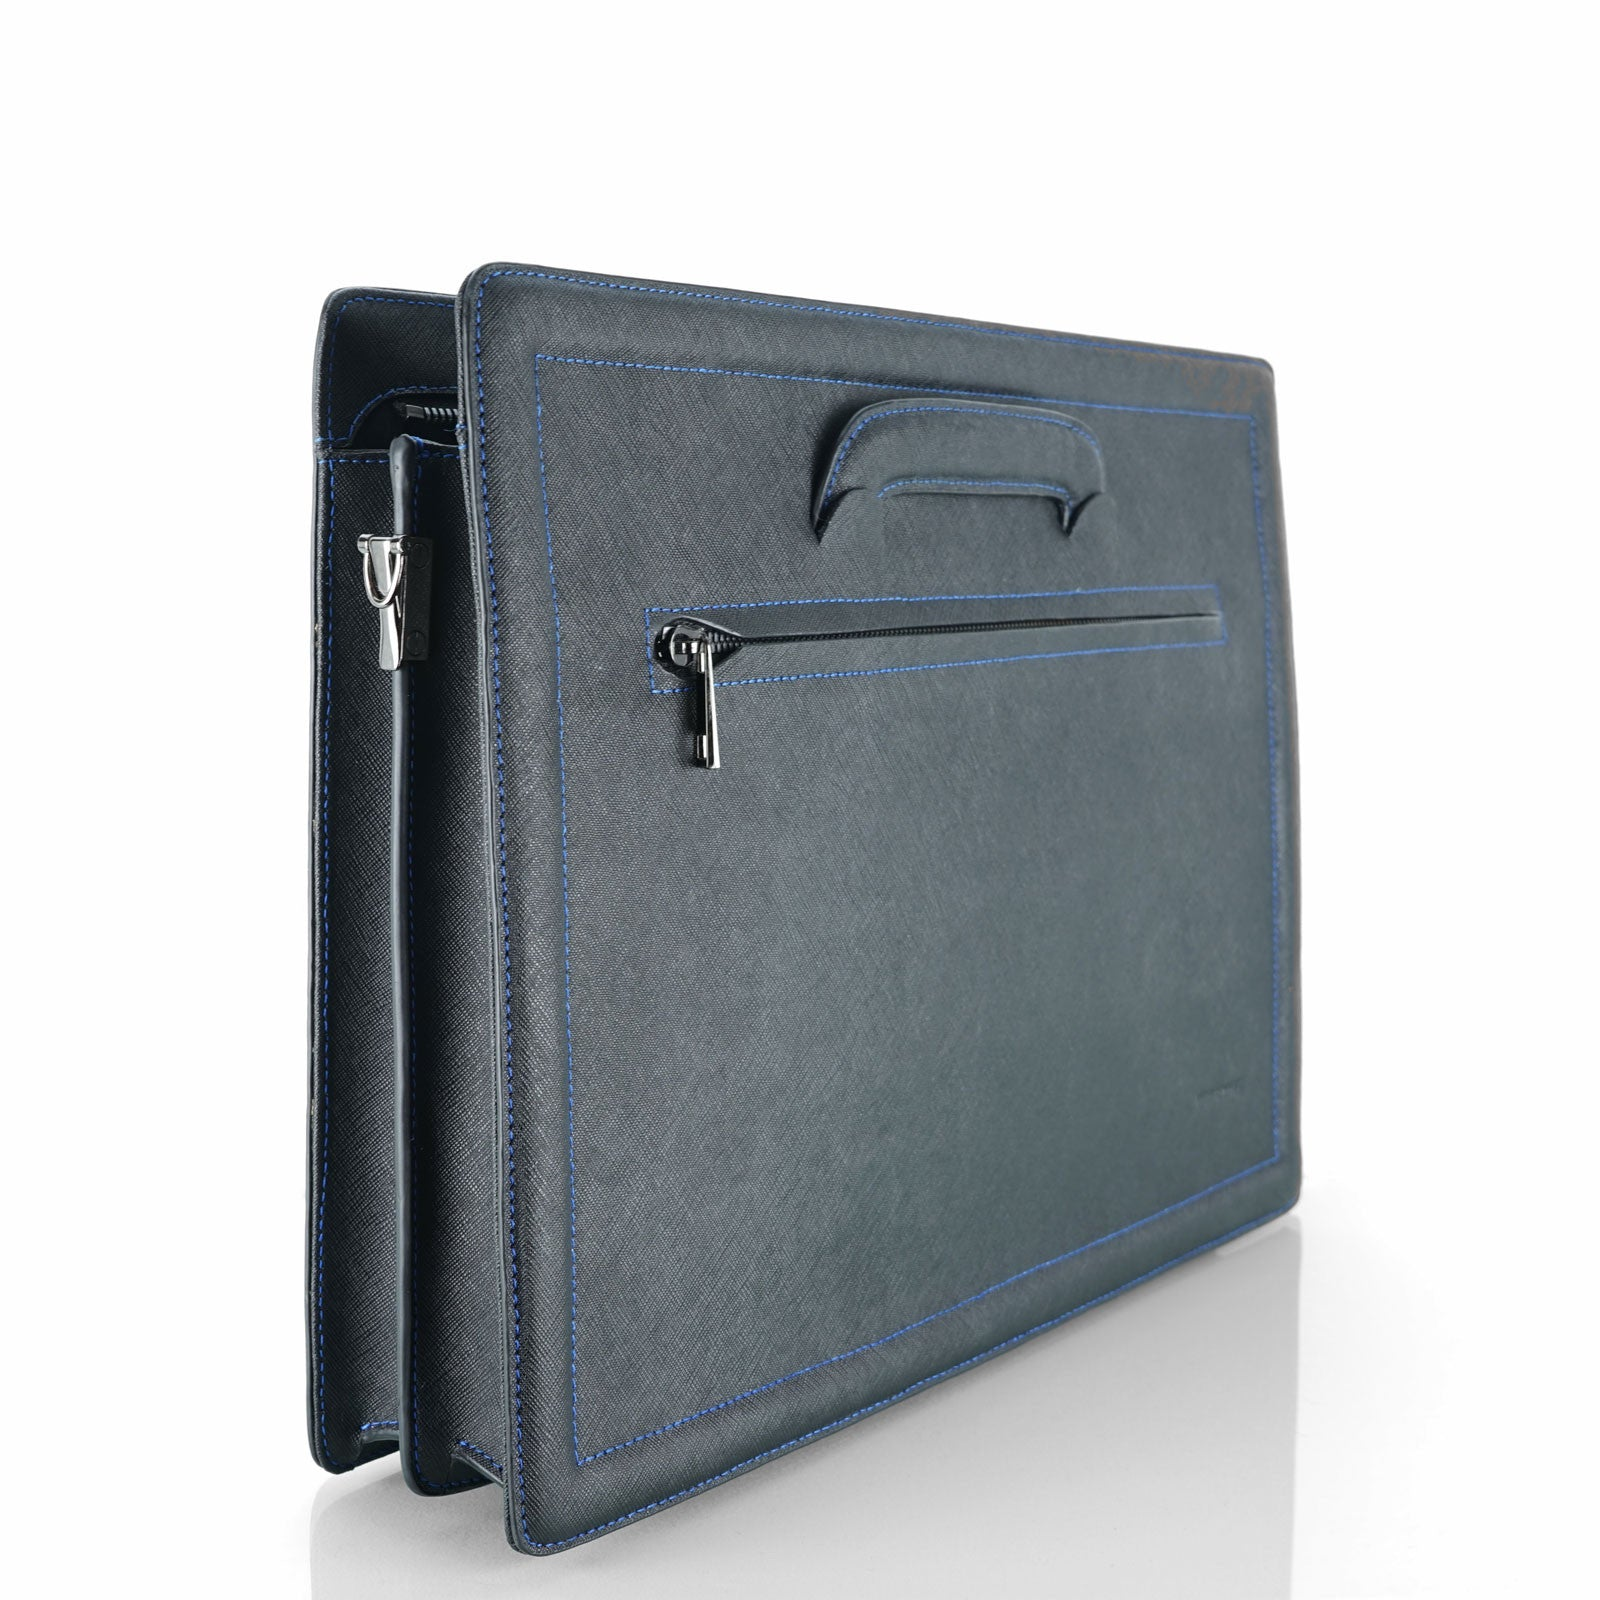 MINUTIAE Briefcase Black Saffiano Leather with Blue Stitching